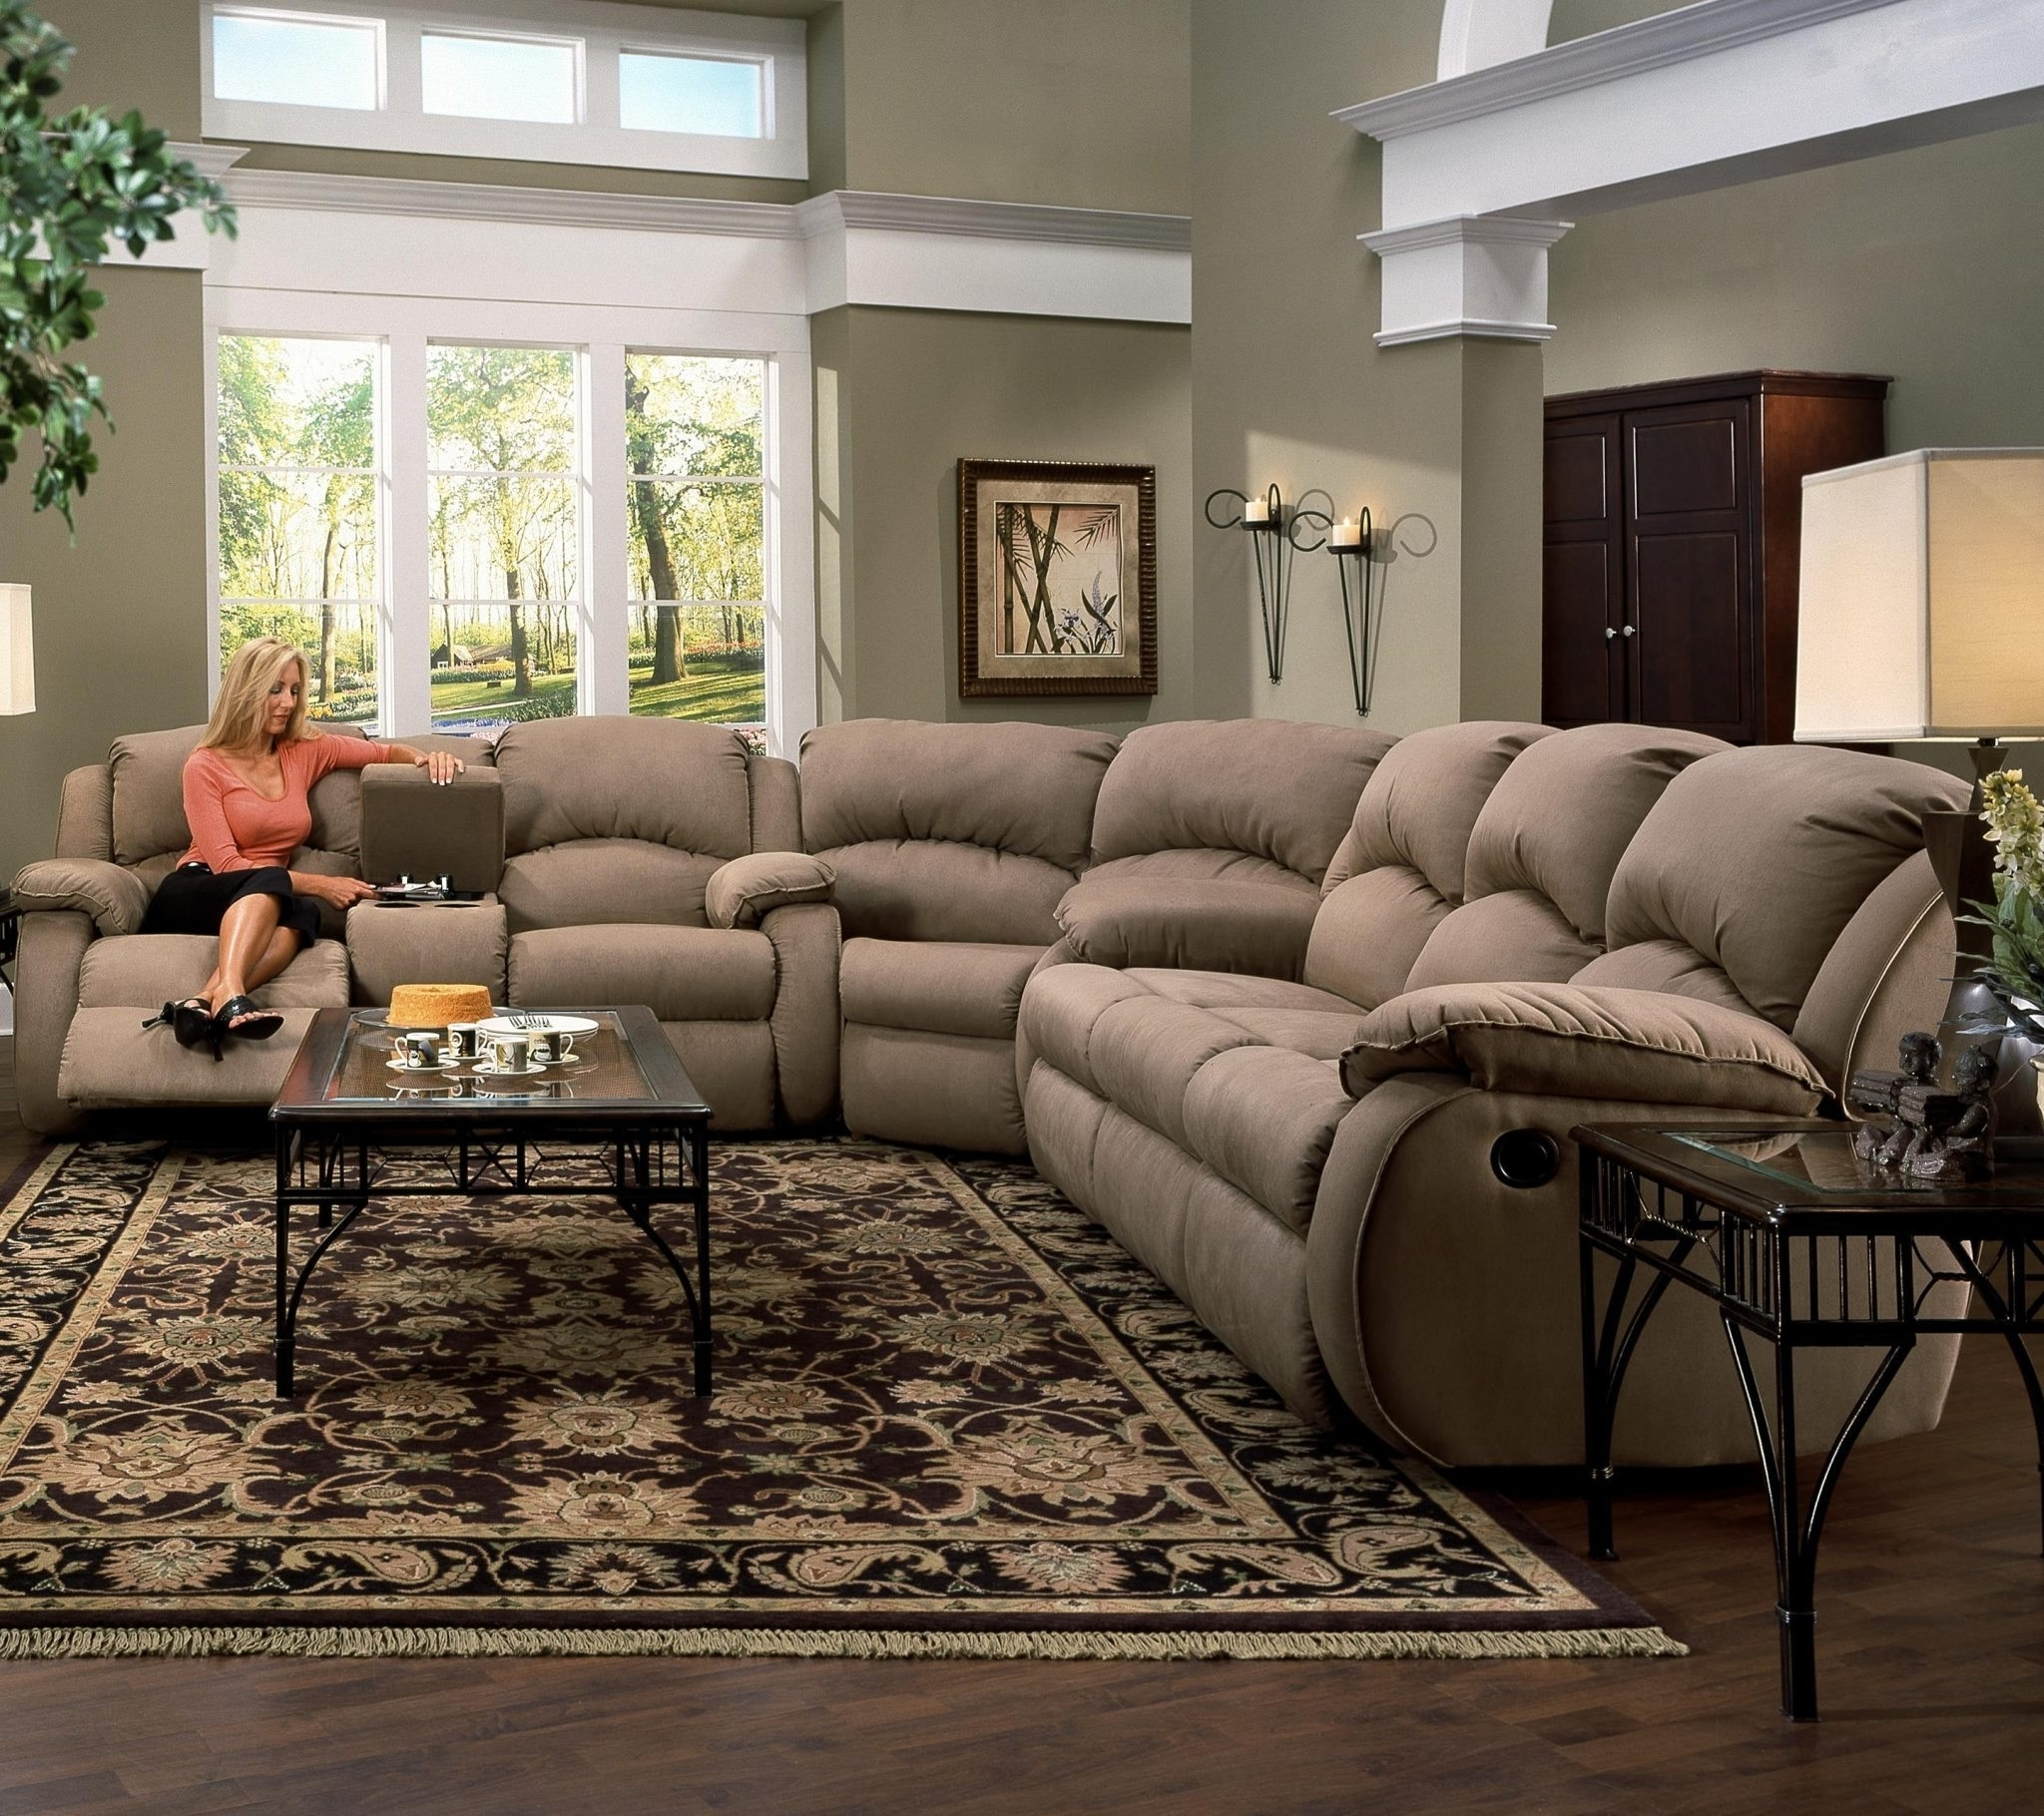 Most Recent Curved Sectional Sofas With Recliner In Furniture : Awesome Walmart Sectionals Lovely Sears Canada (View 8 of 15)